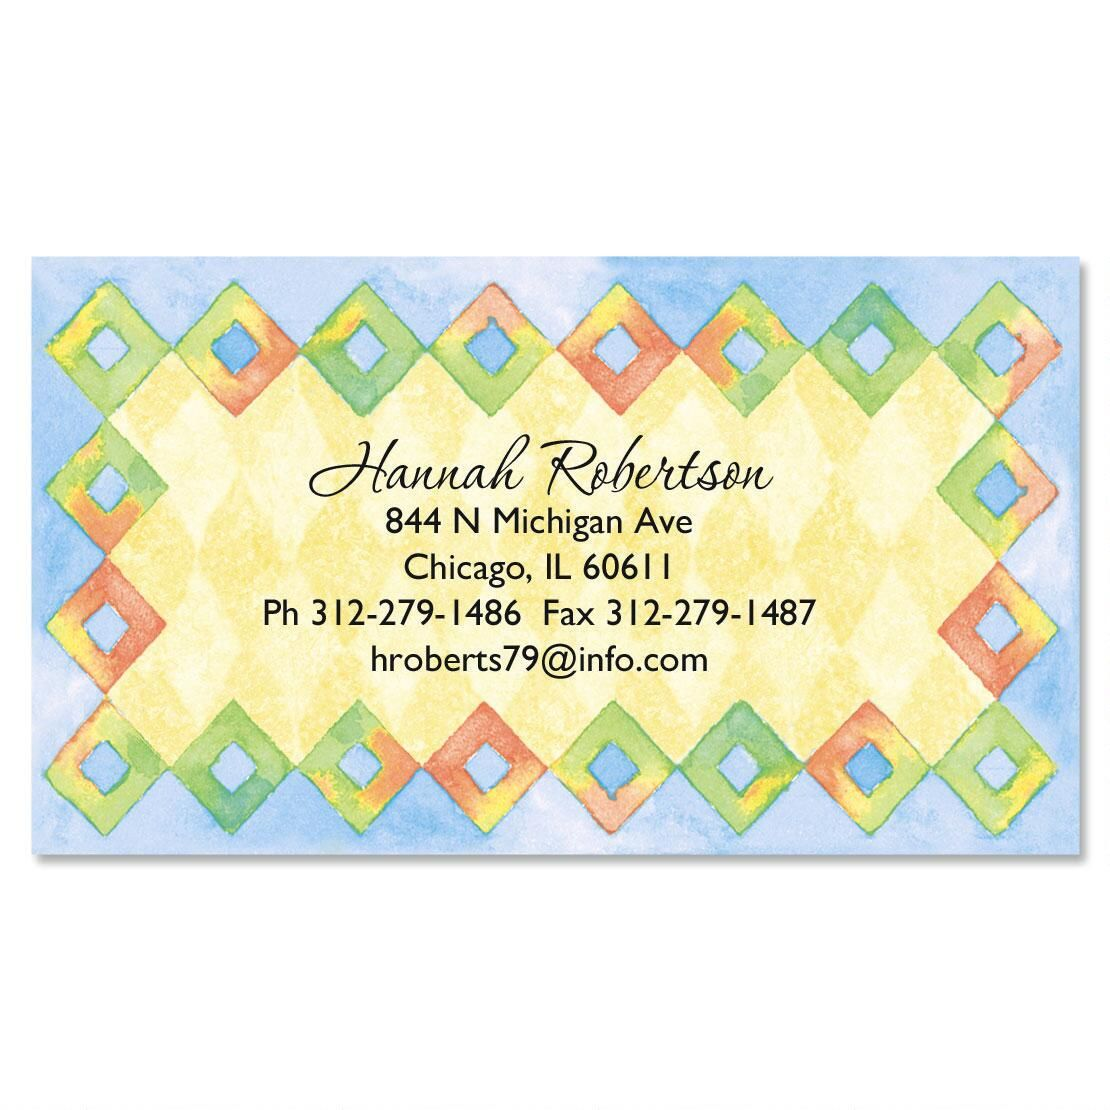 Harlequin Diamond Border Business Cards